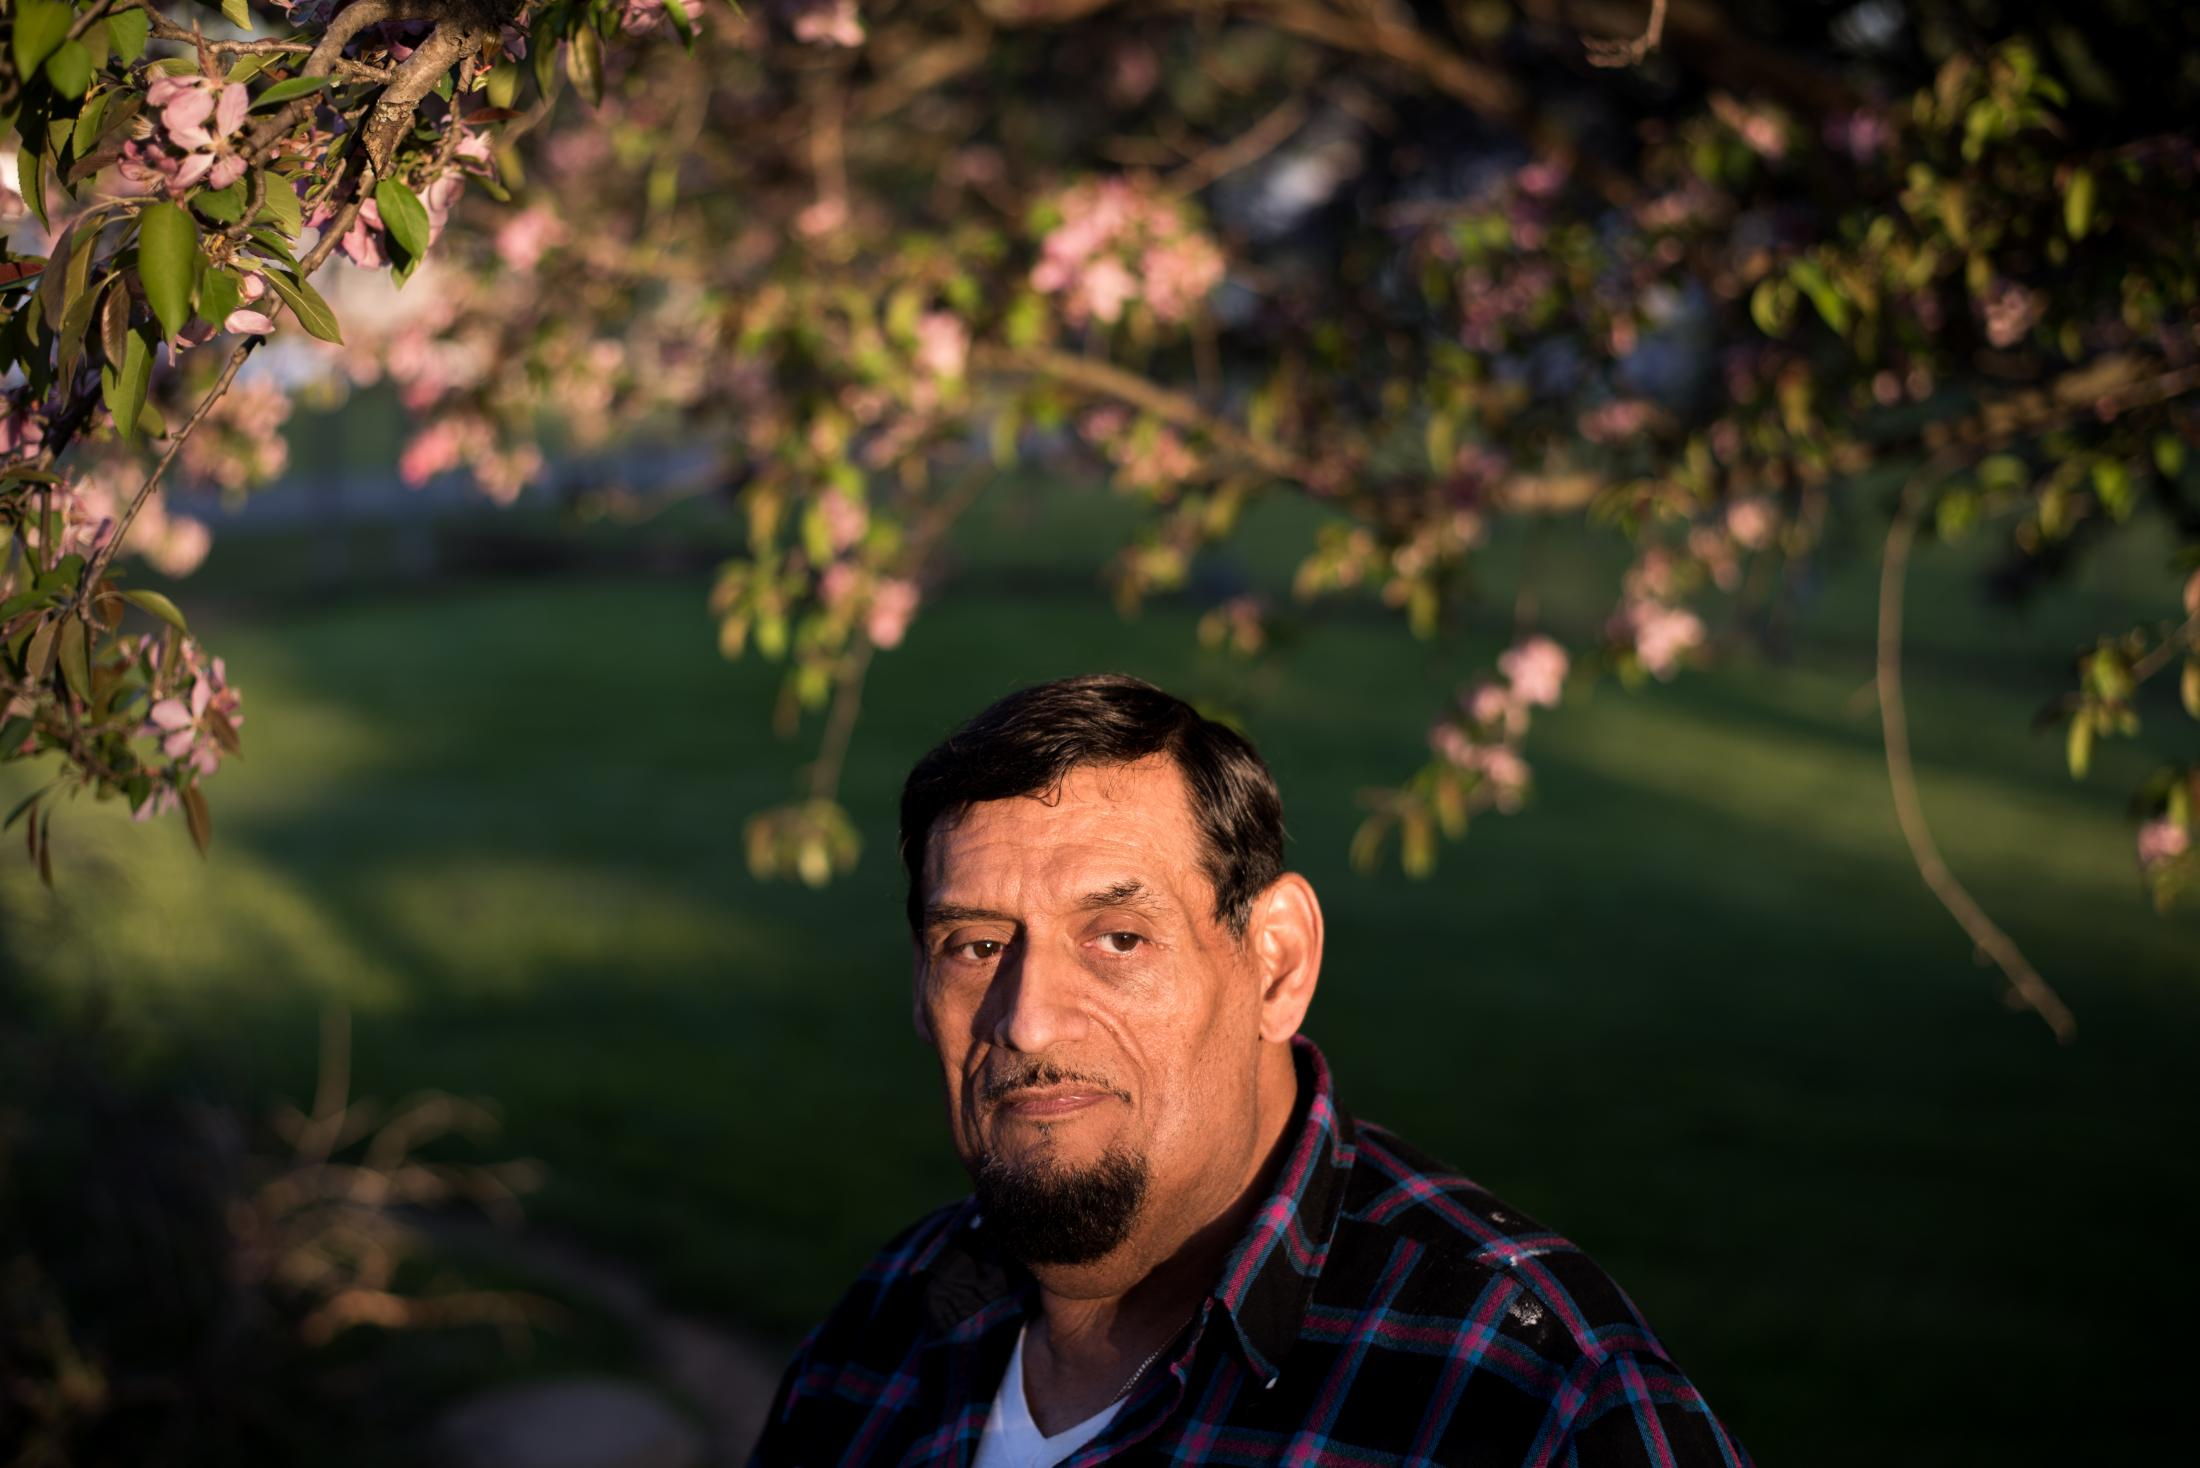 Roland Garcia stands in his backyard in Coolville, Ohio in April 2015. In 2006, Garcia and his partner, Tom, started looking to move from Florida to Southeast Ohio to be closer to Garcia's mom who was in poor health. They found a 100-year-old house in Coolville, fell in love with it immediately, and left before even looking around town. In the process of moving, Garcia's mother passed away. Garcia and Tom made a decision to stay in Coolville. Garcia says that his co-workers at Coolville's Arcadia Nursing Home became a second family to him. They were there to console and support him when Garcia was diagnosed with cancer and when Tom, his partner of 35 years, died of a heart attack this past November.